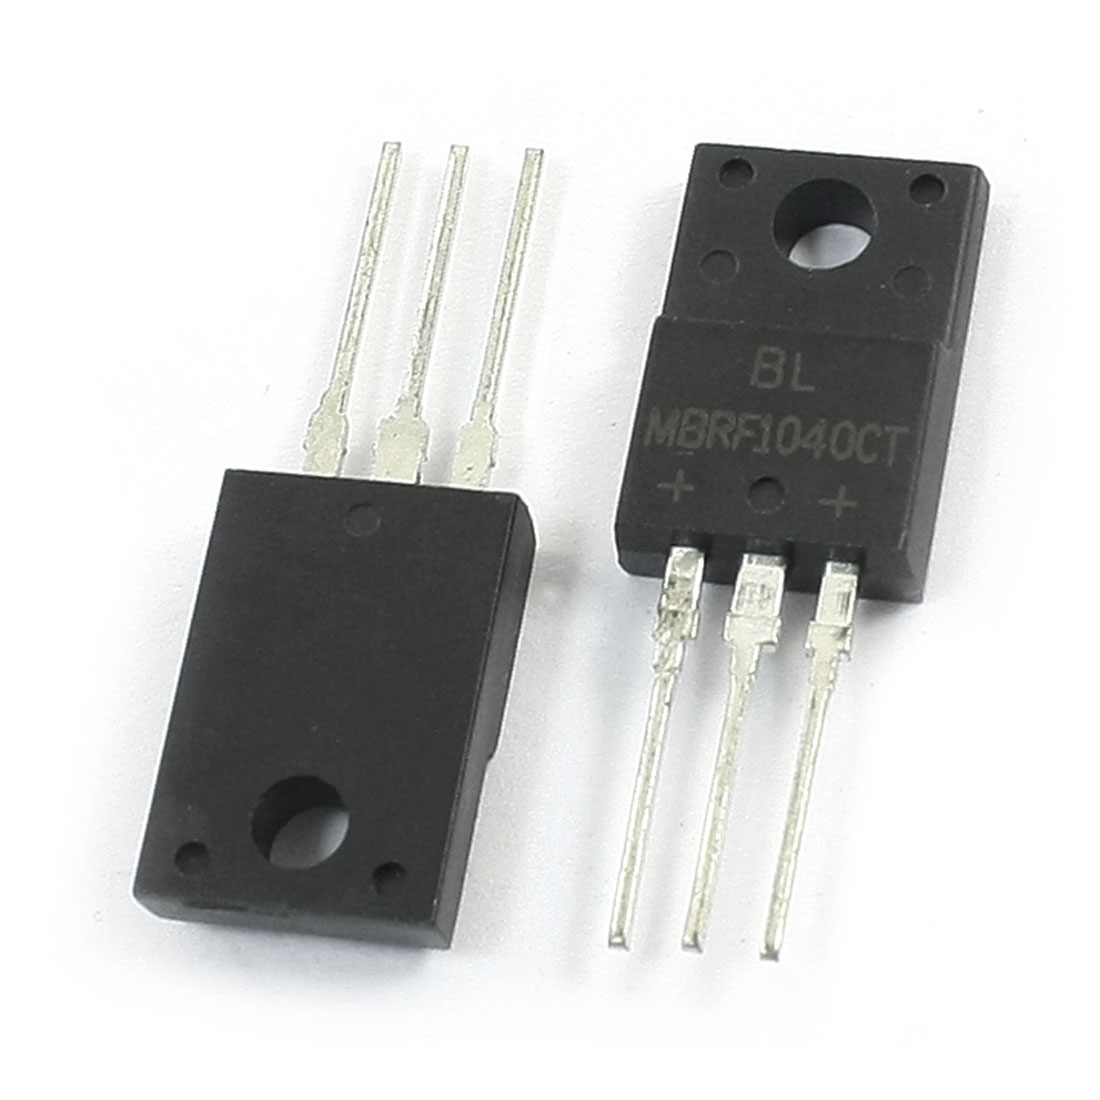 2Pcs MBRF1040CT Electronic 3 Terminals Through Hole Mounting Dual High-Voltage Power Schottky Barrier Rectifier Diode